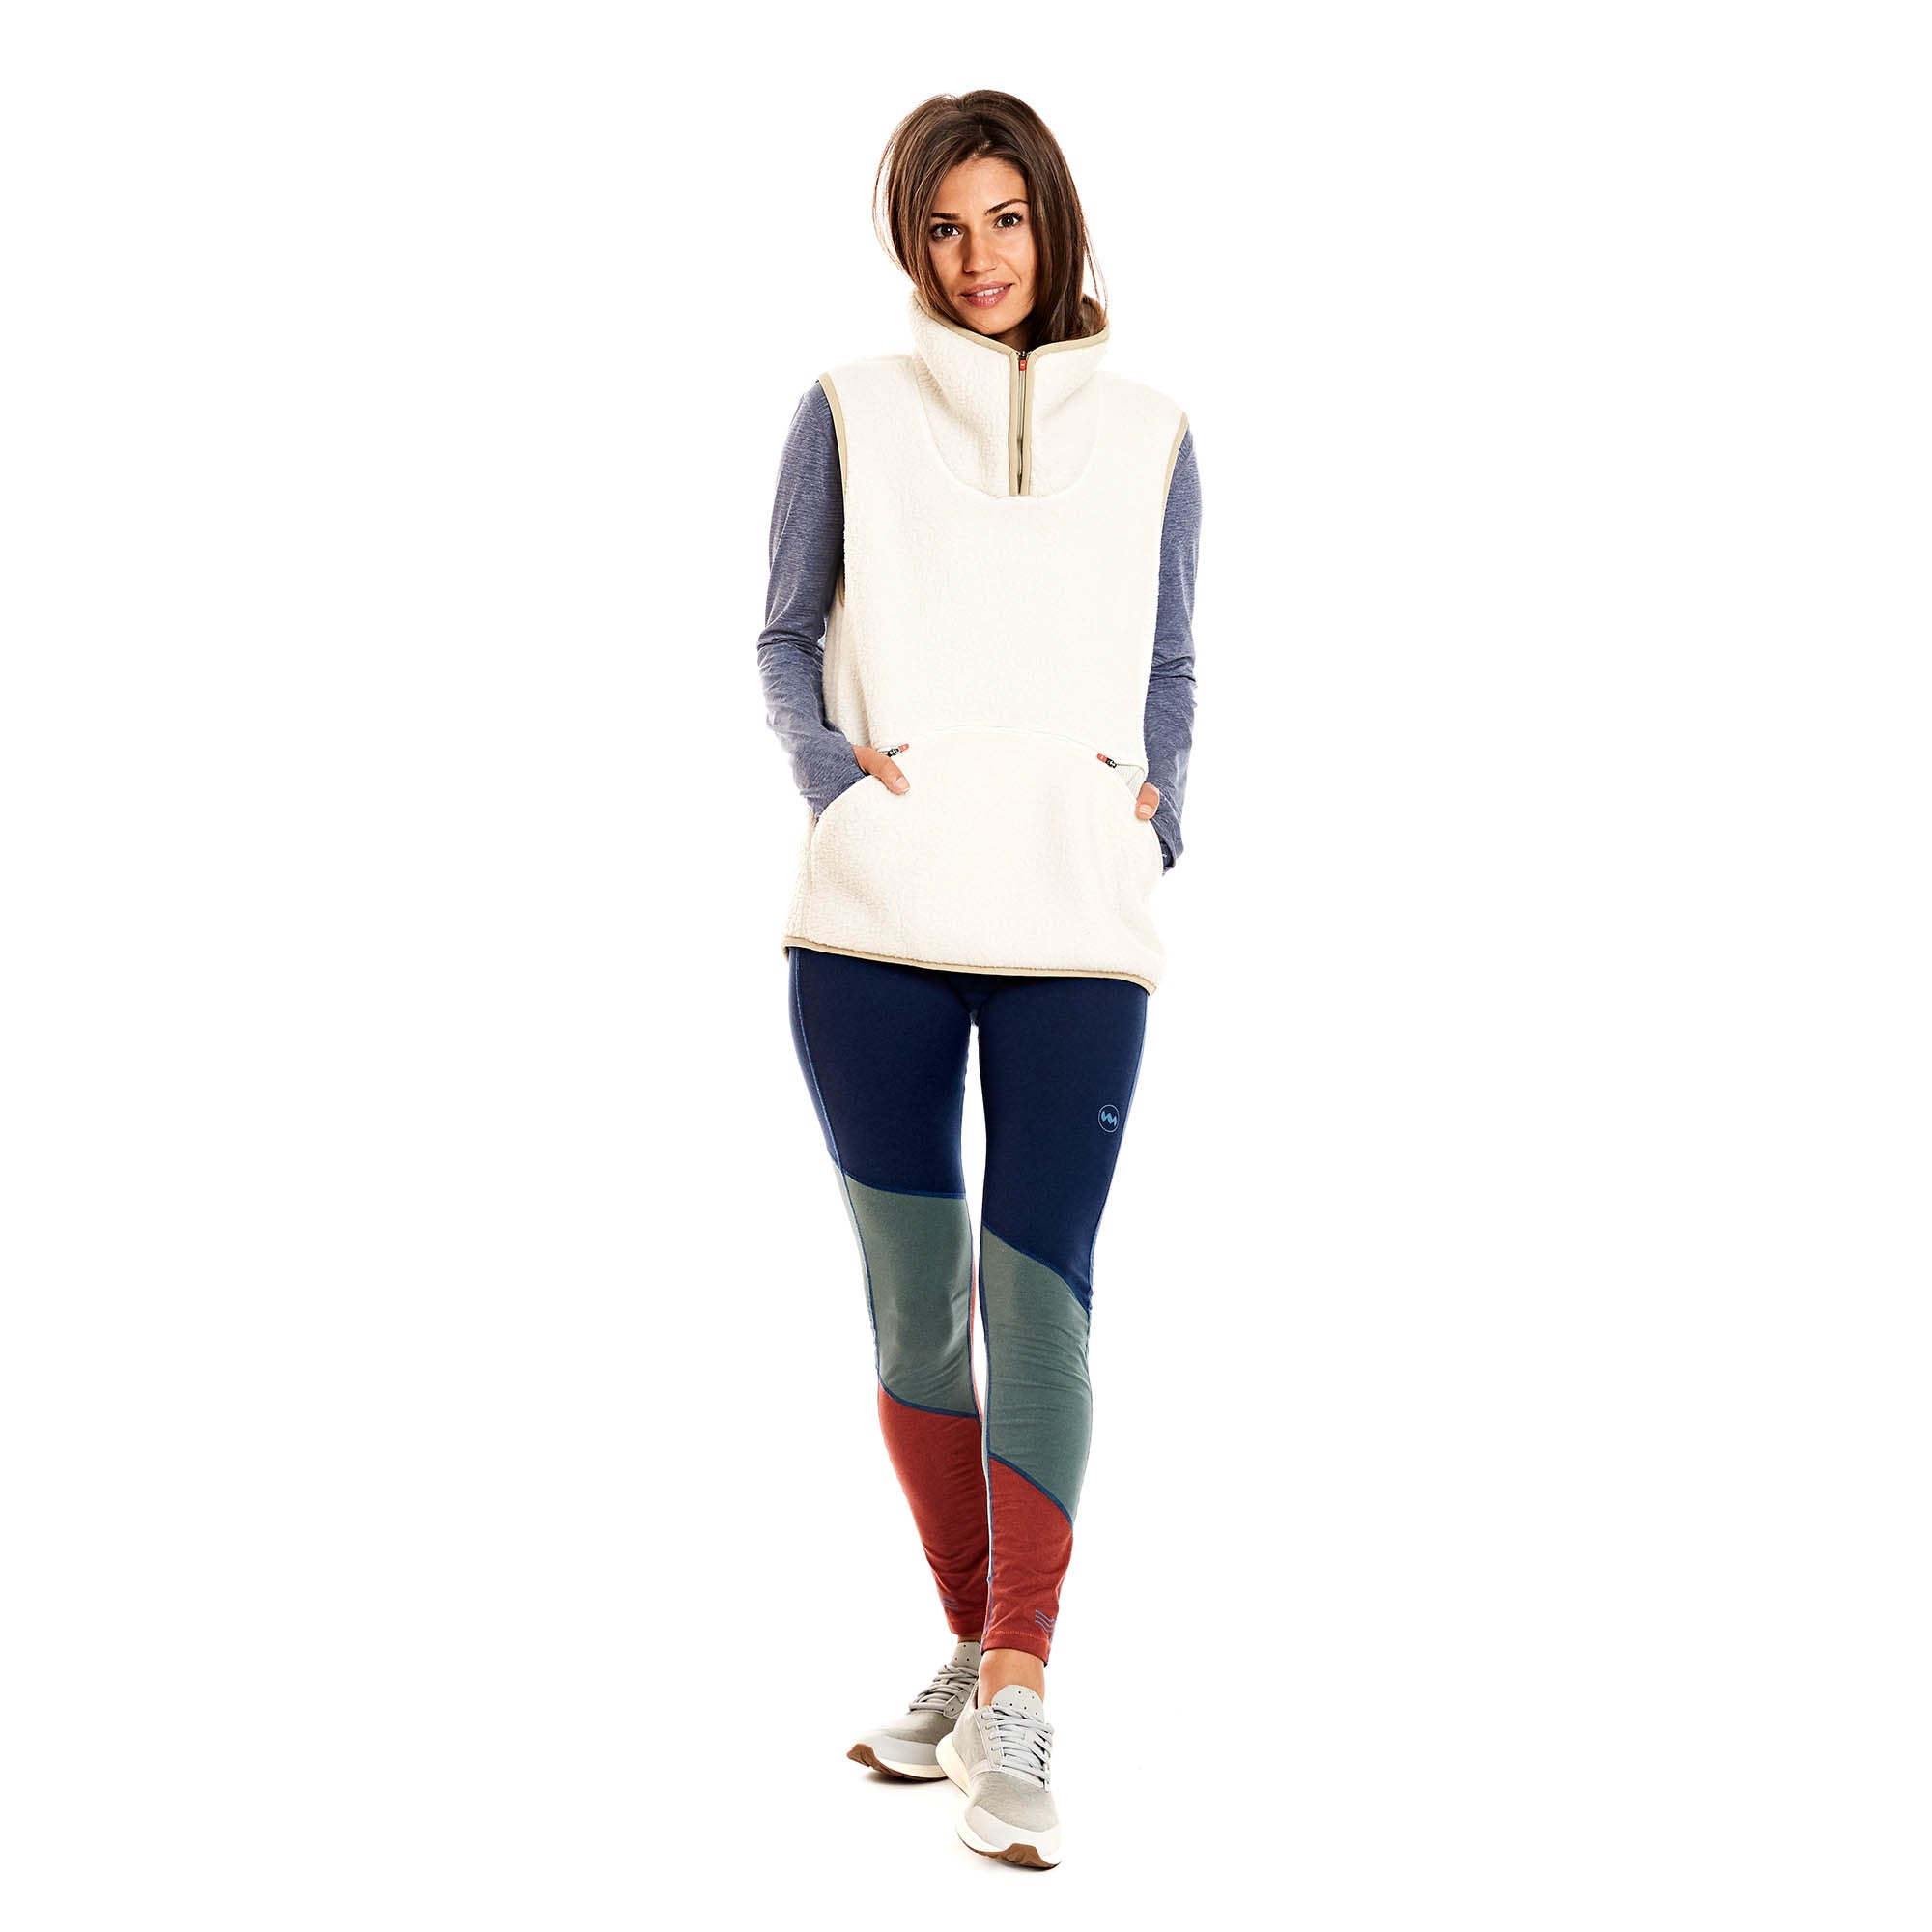 Expedition Fleece Vest in Salar